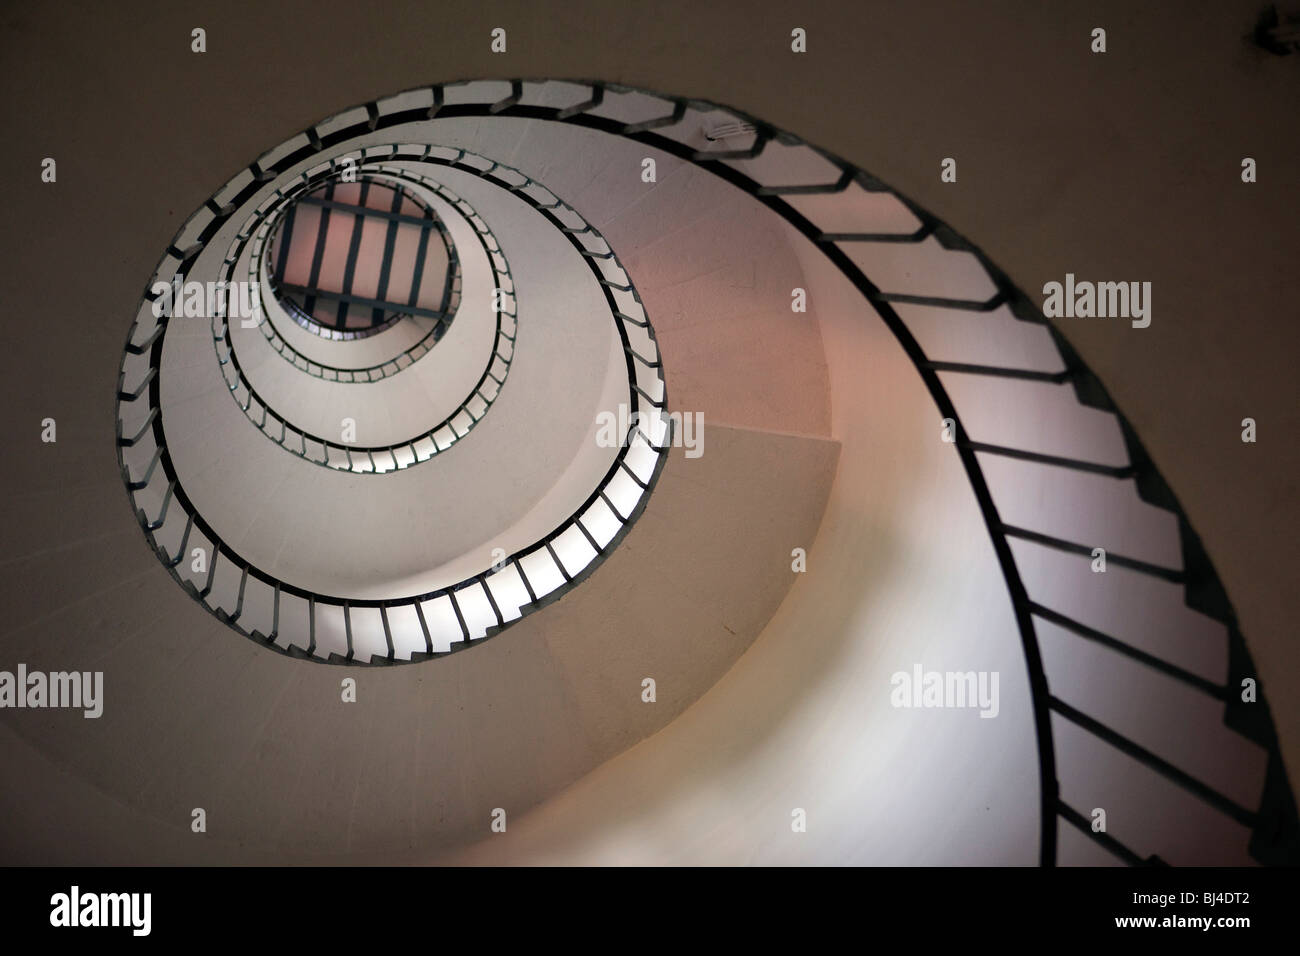 India, Kerala, Kollam, Lighthouse, interior view looking up staircase Stock Photo